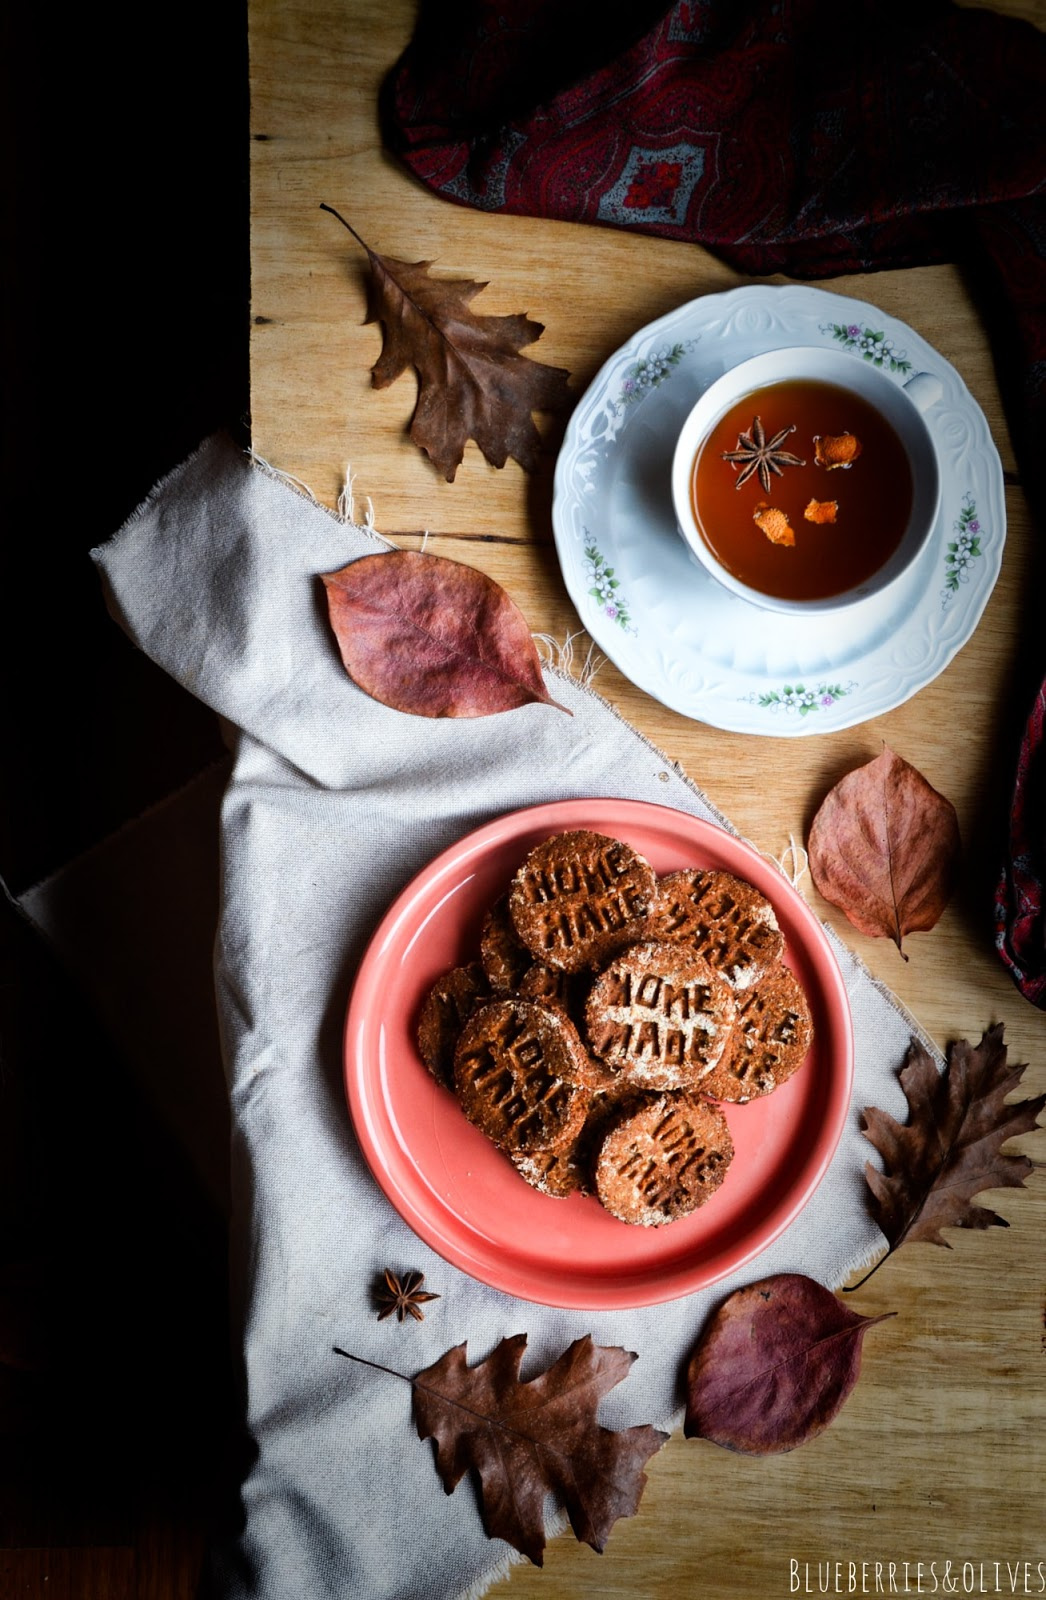 Cenital view homemade cookies on red ceramic dish, dark background, old wood, piles books with red apple on top, porcelain mug with tea, star anise and orange peels